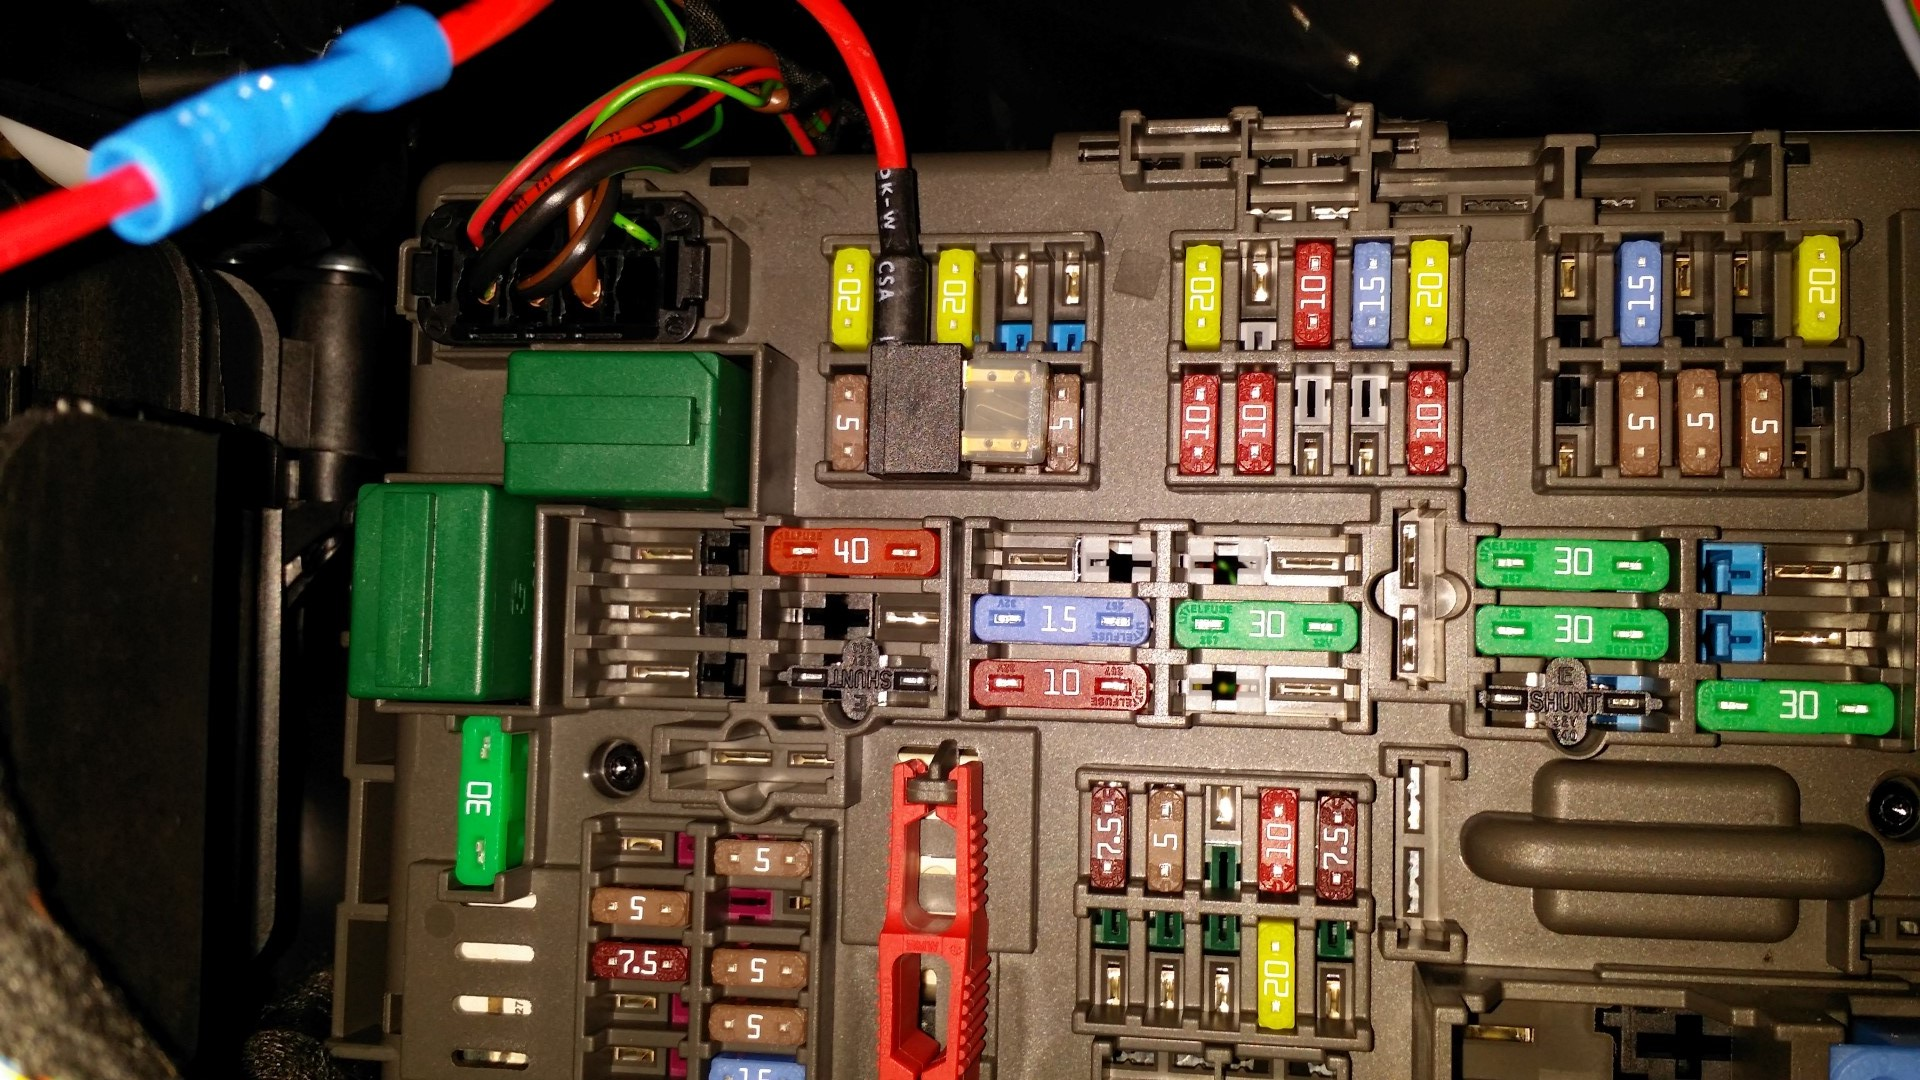 fuse04 e60 fuse box wiring diagram simonand bmw e90 retrofit access fuse box at bayanpartner.co